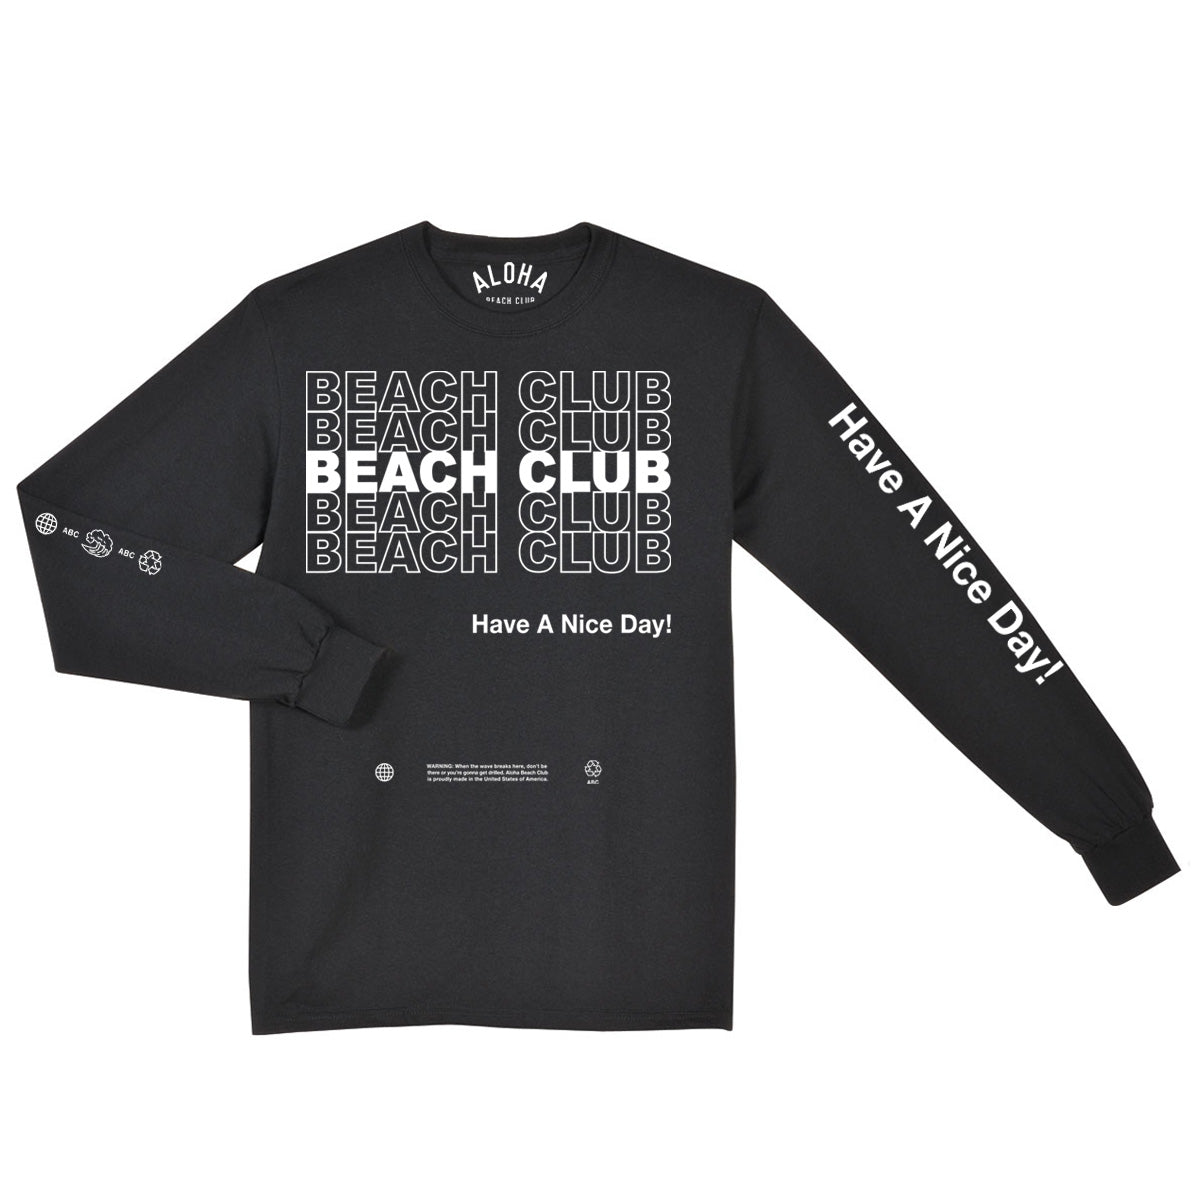 Aloha Beach Club - Thank You Long Sleeve Shirt Black - Aloha Beach Club